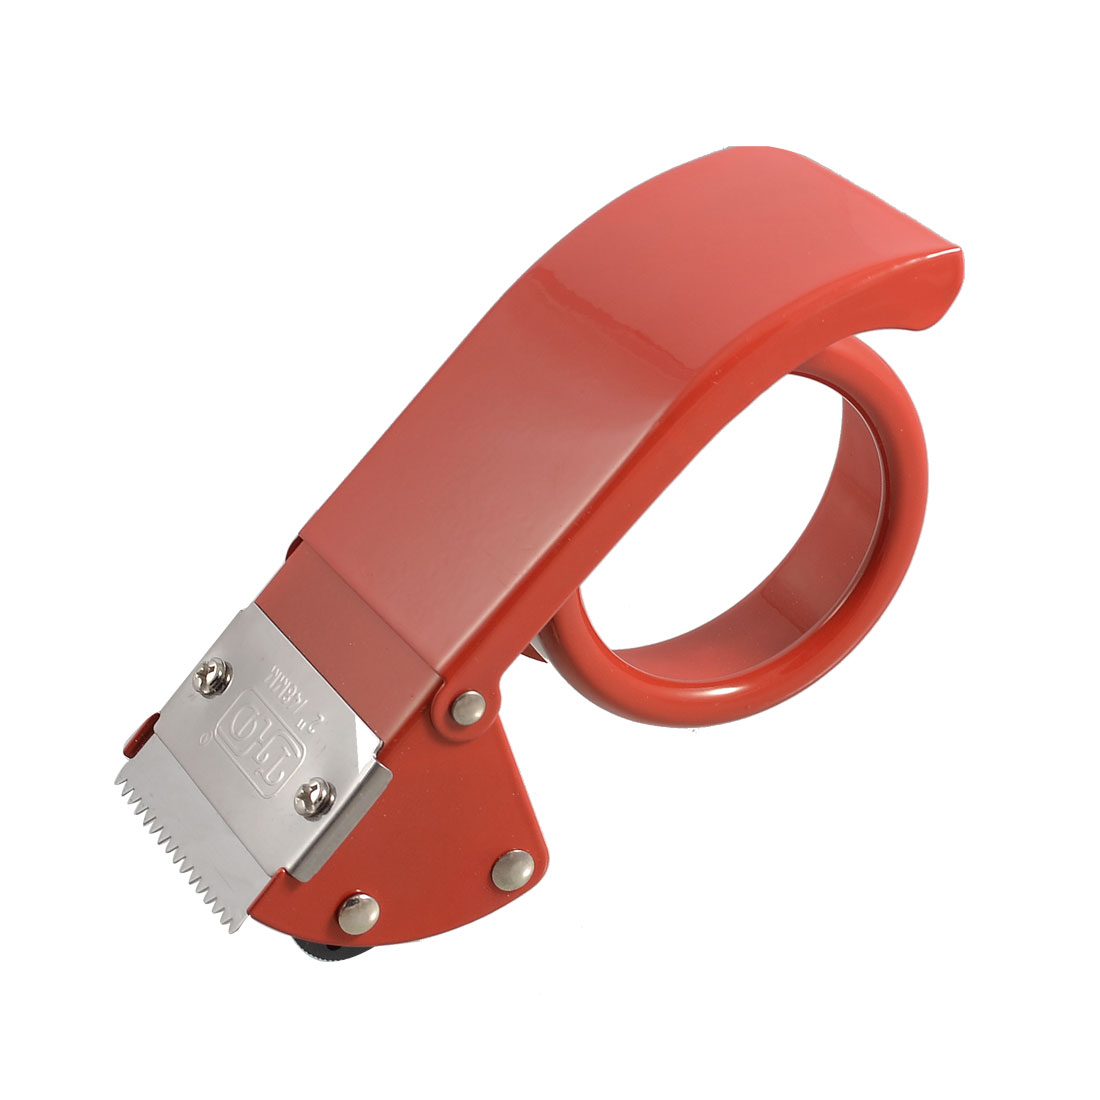 Unique Bargains Unique Bargains Red Metal Roller Sealing Parcel 2 inch Wide Tape Cutter Dispenser